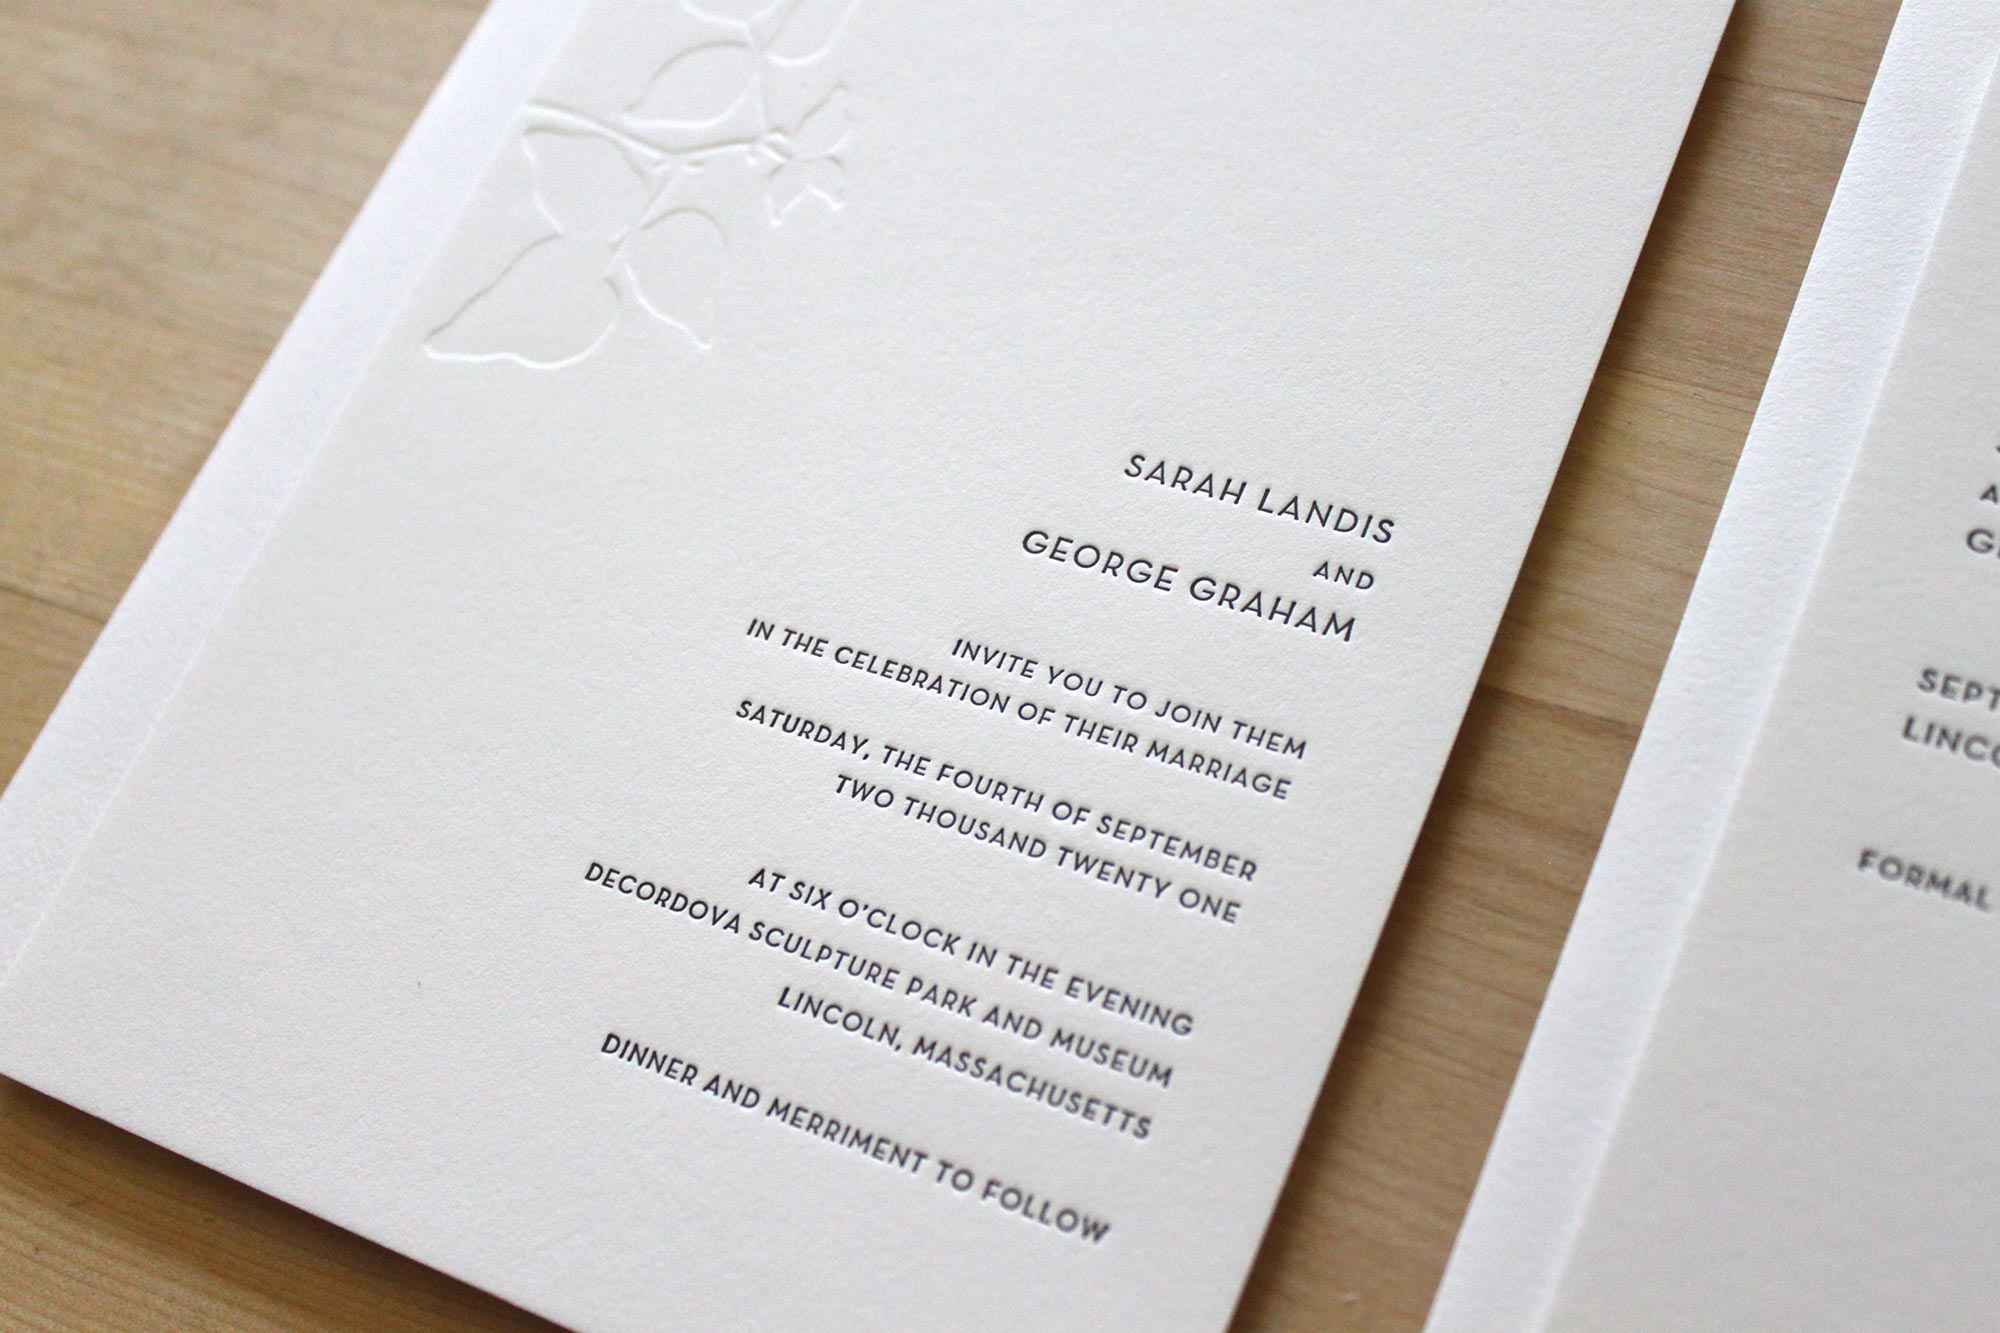 Ivy-Leaf-6-letterpress-wedding-invitations.jpg